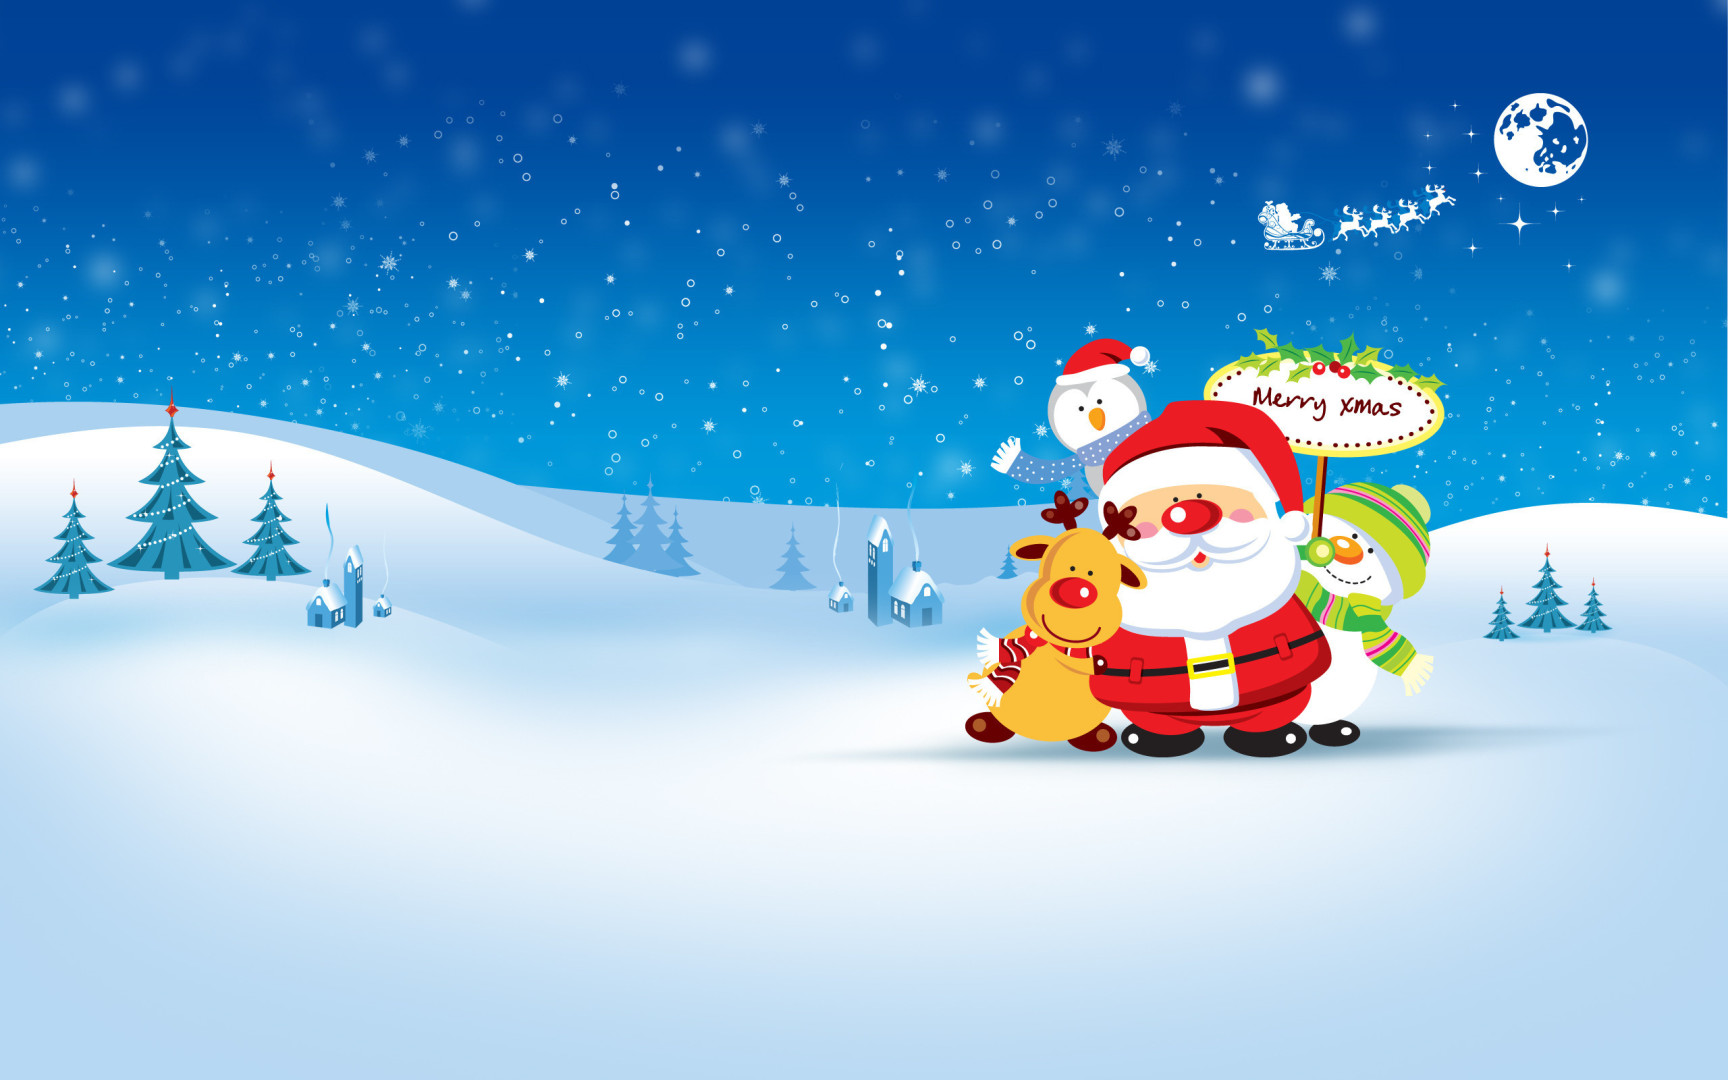 santa claus wallpaper (12)